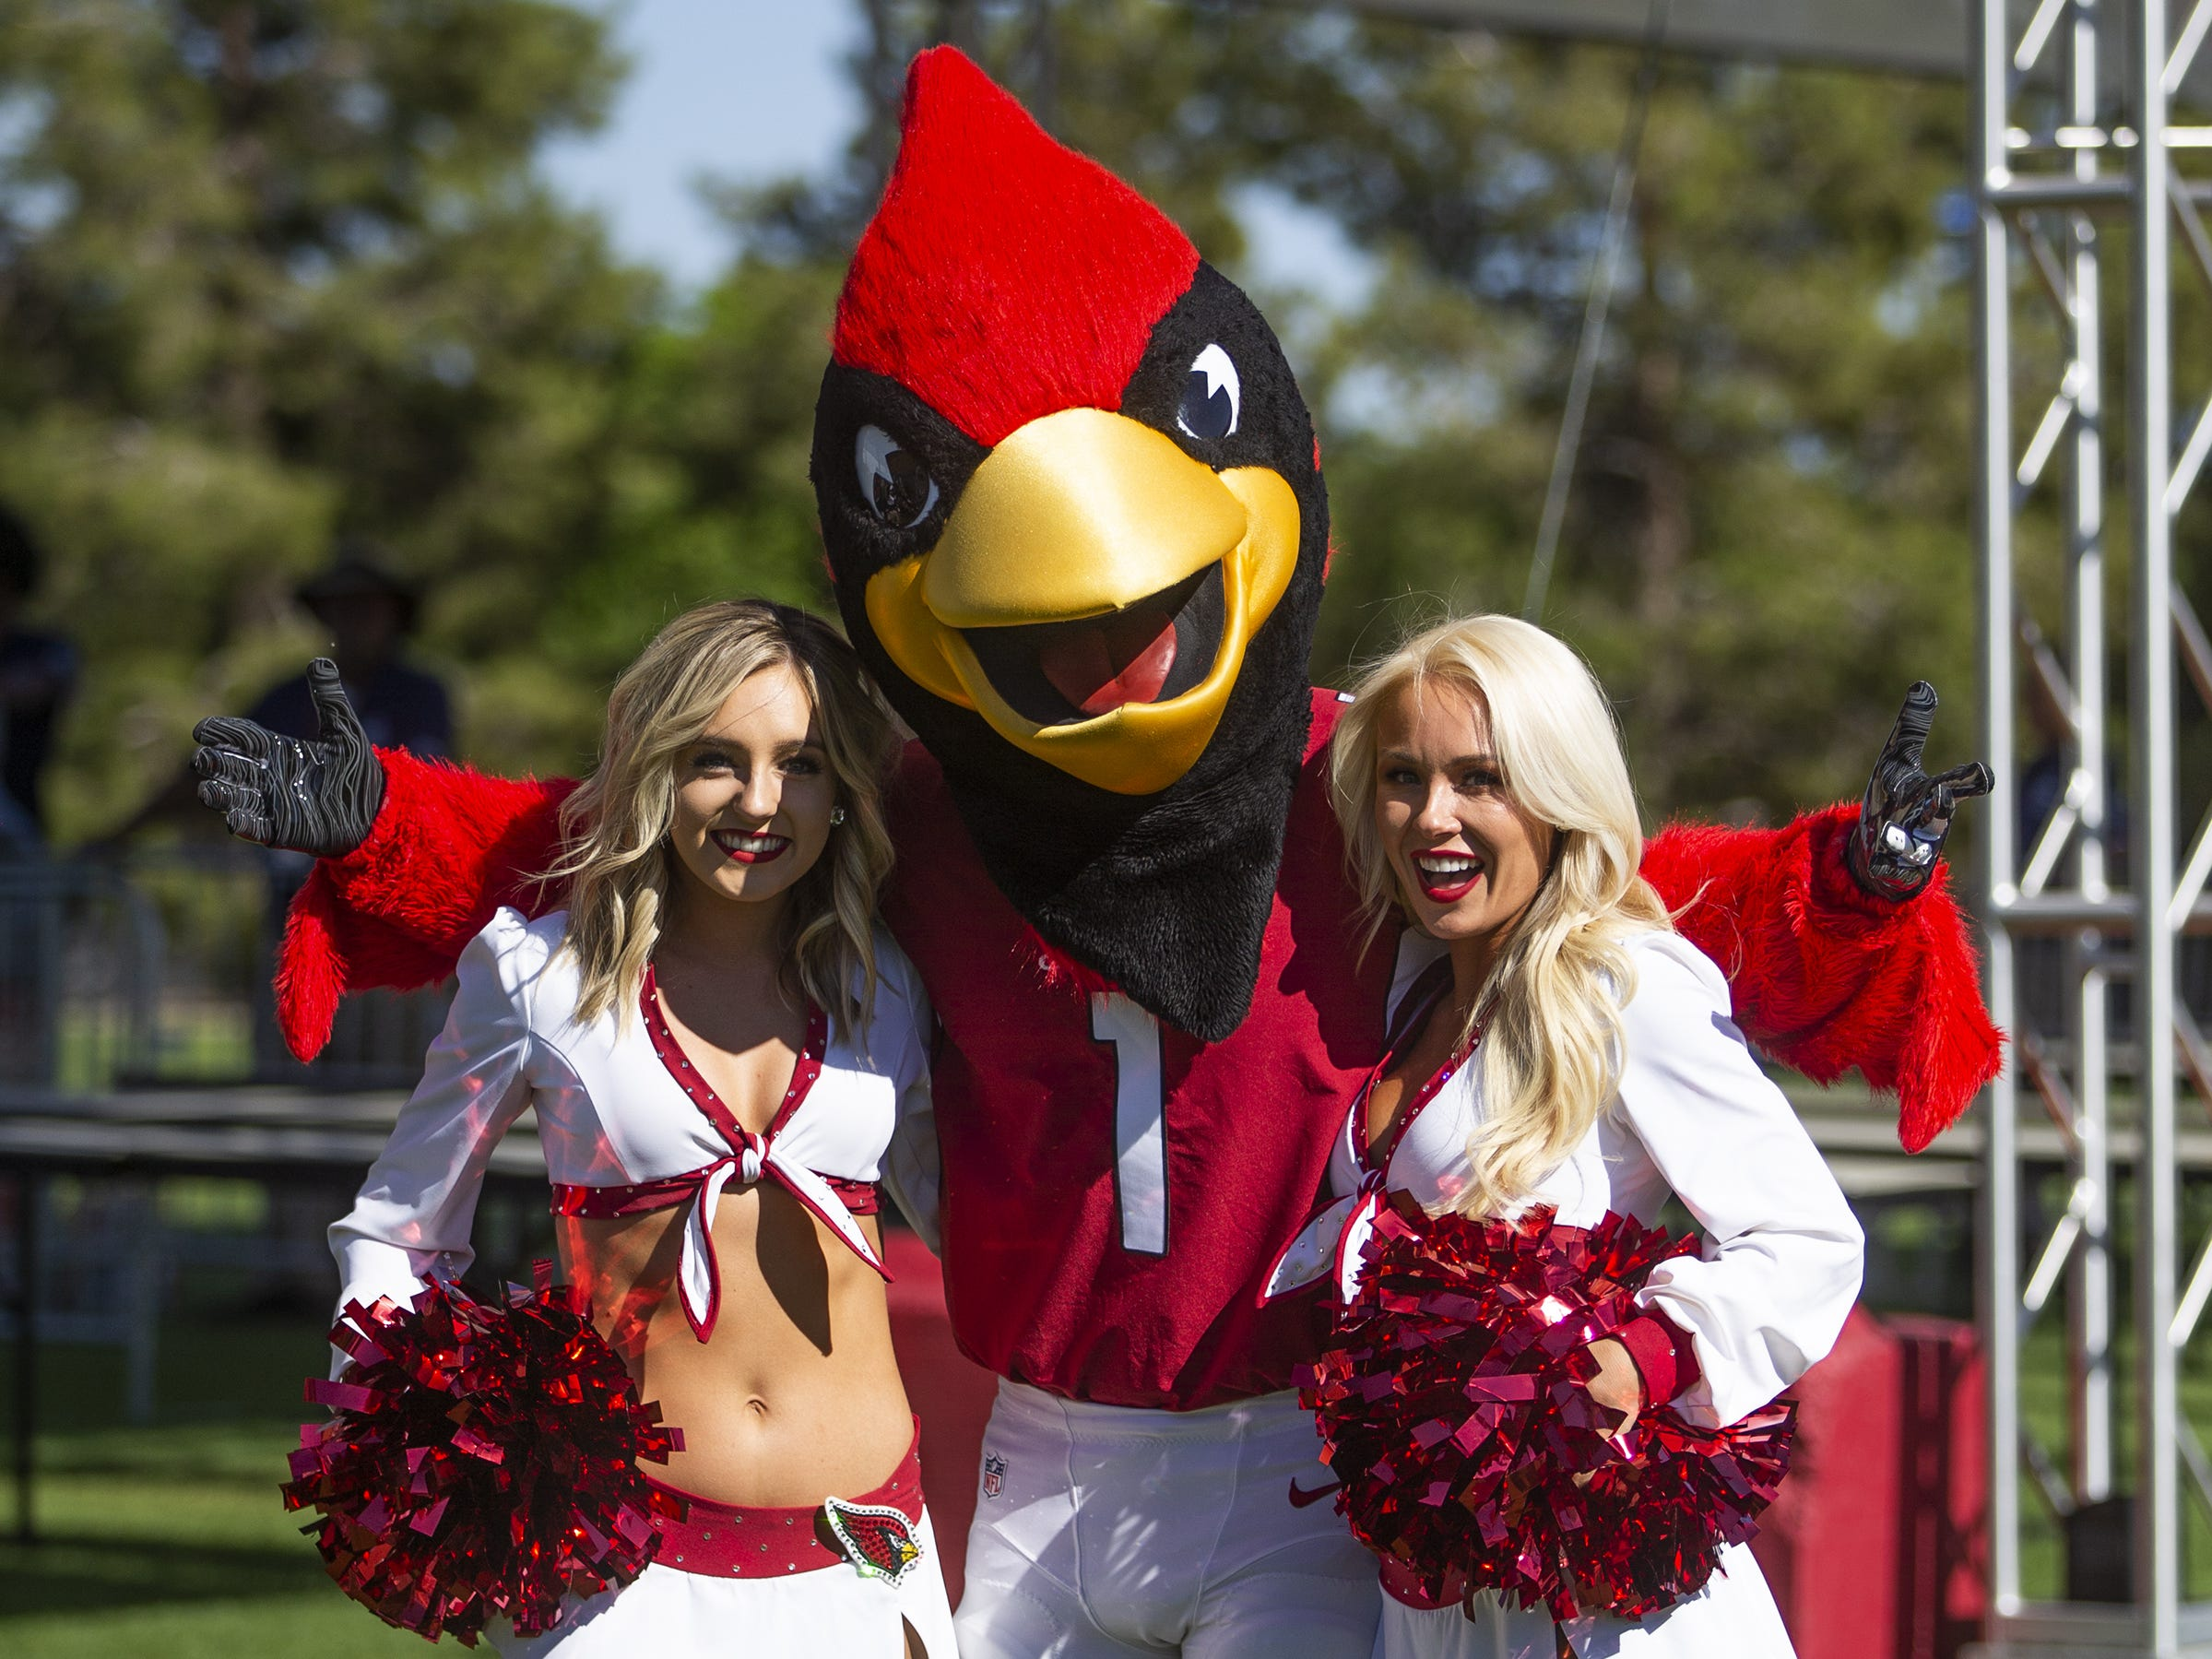 Arizona Cardinals mascot Big Red and Cardinals cheerleaders Shelby, left, and Davis, right, prepare for the crowds to arrive at the NFL Draft party on the Great Lawn outside State Farm Stadium, Thursday, April 25, 2019.